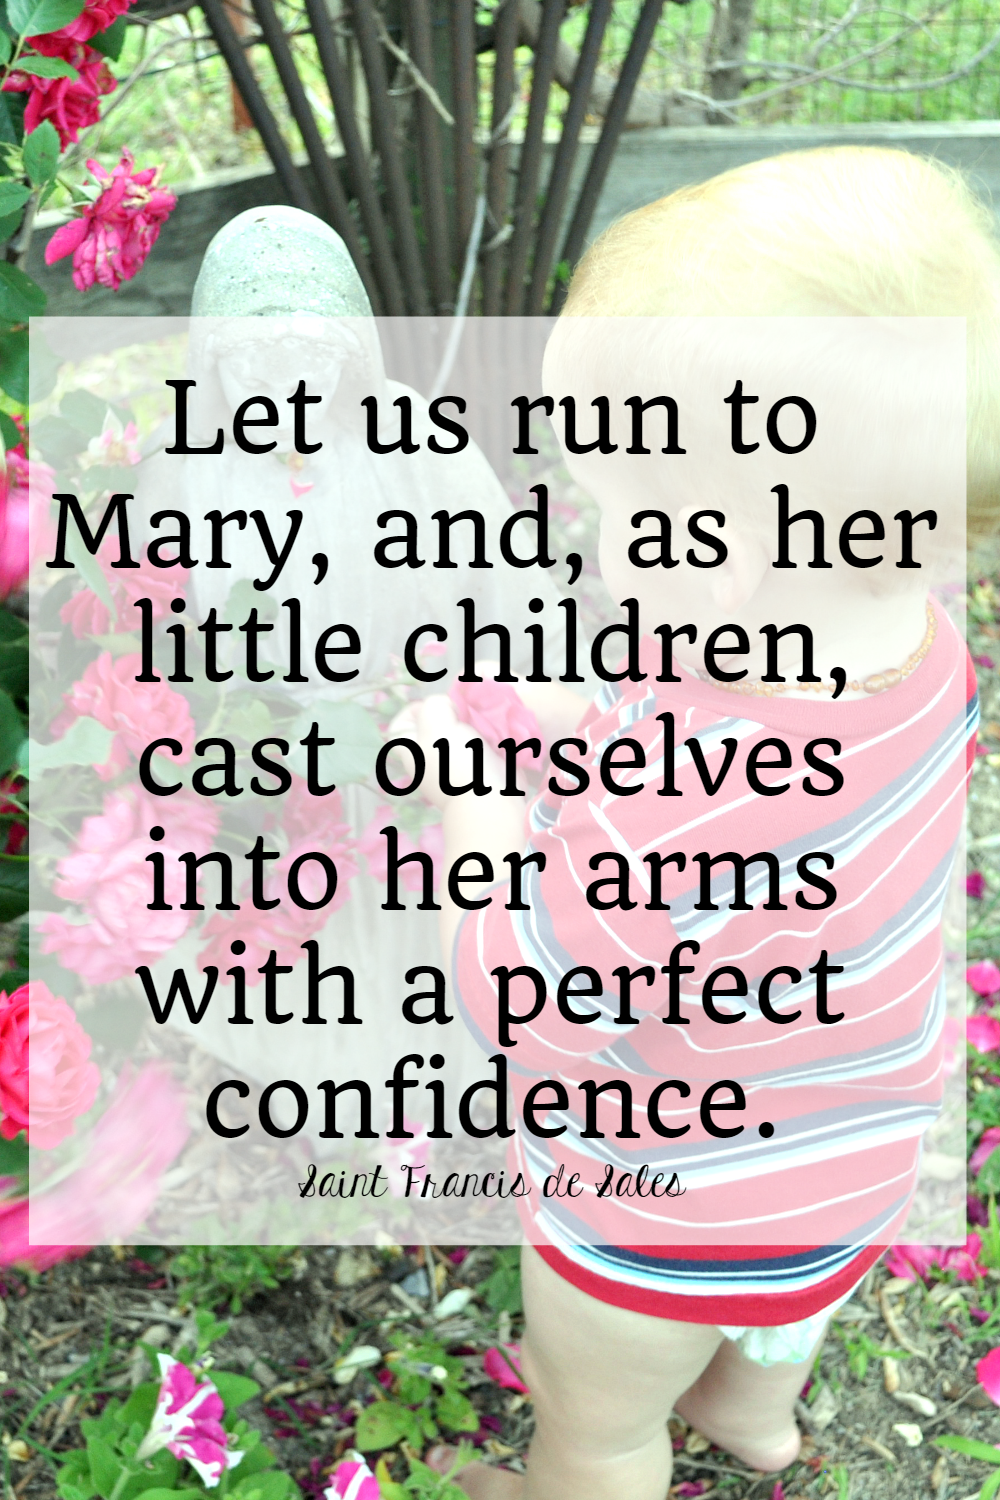 saints quotes about mary